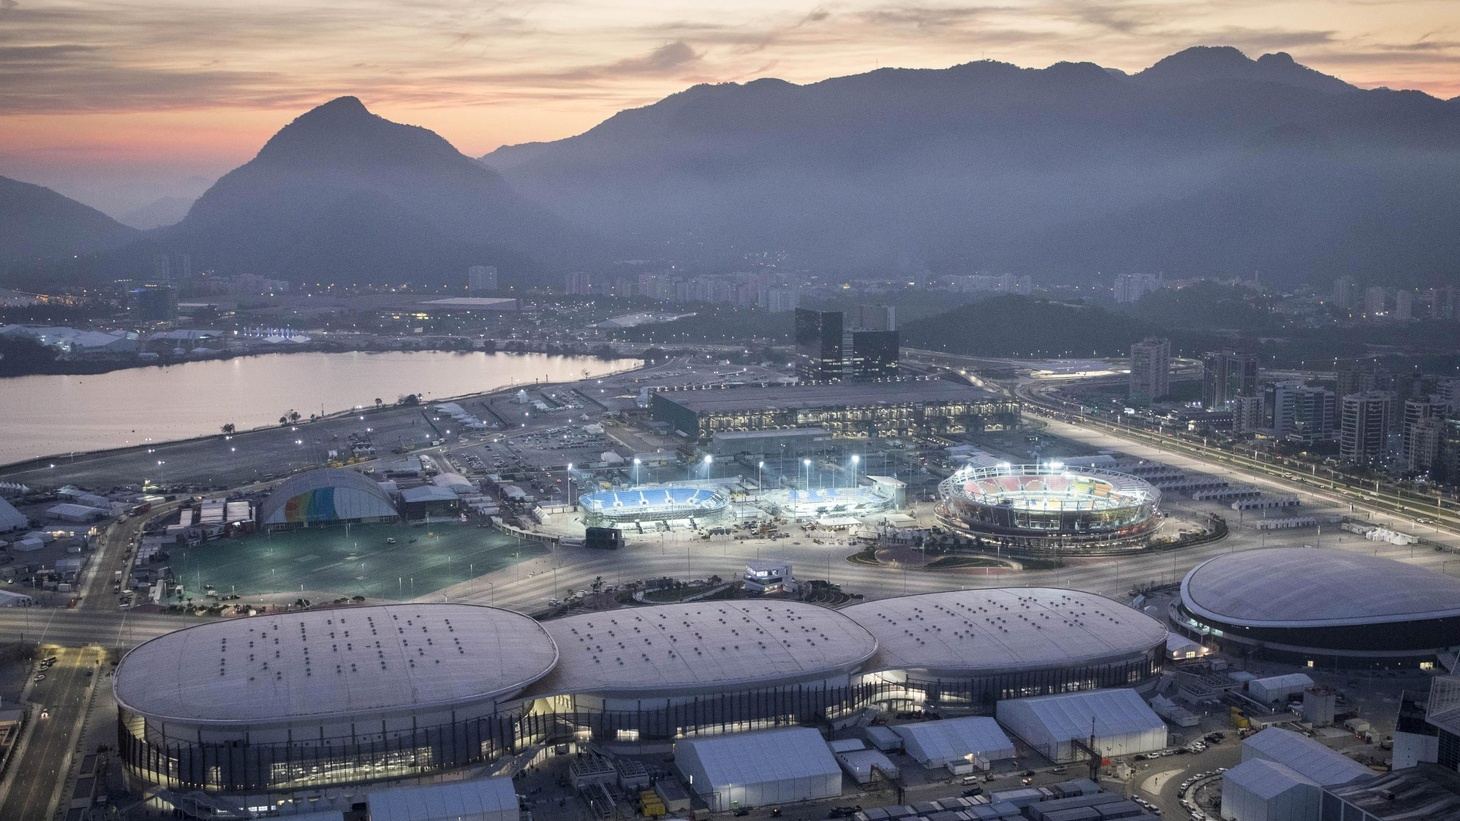 """Corruption, toxic waters, building delays… will Brazil's Olympic """"nomadic architecture"""" deliver after a difficult construction process? If running, jumping and swimming are not your thing, you can tune into Rio's eGames. But do gamers really need athletic wear? And Brazilian modernist architect Lina Bo Bardi gets her moment in the sun."""